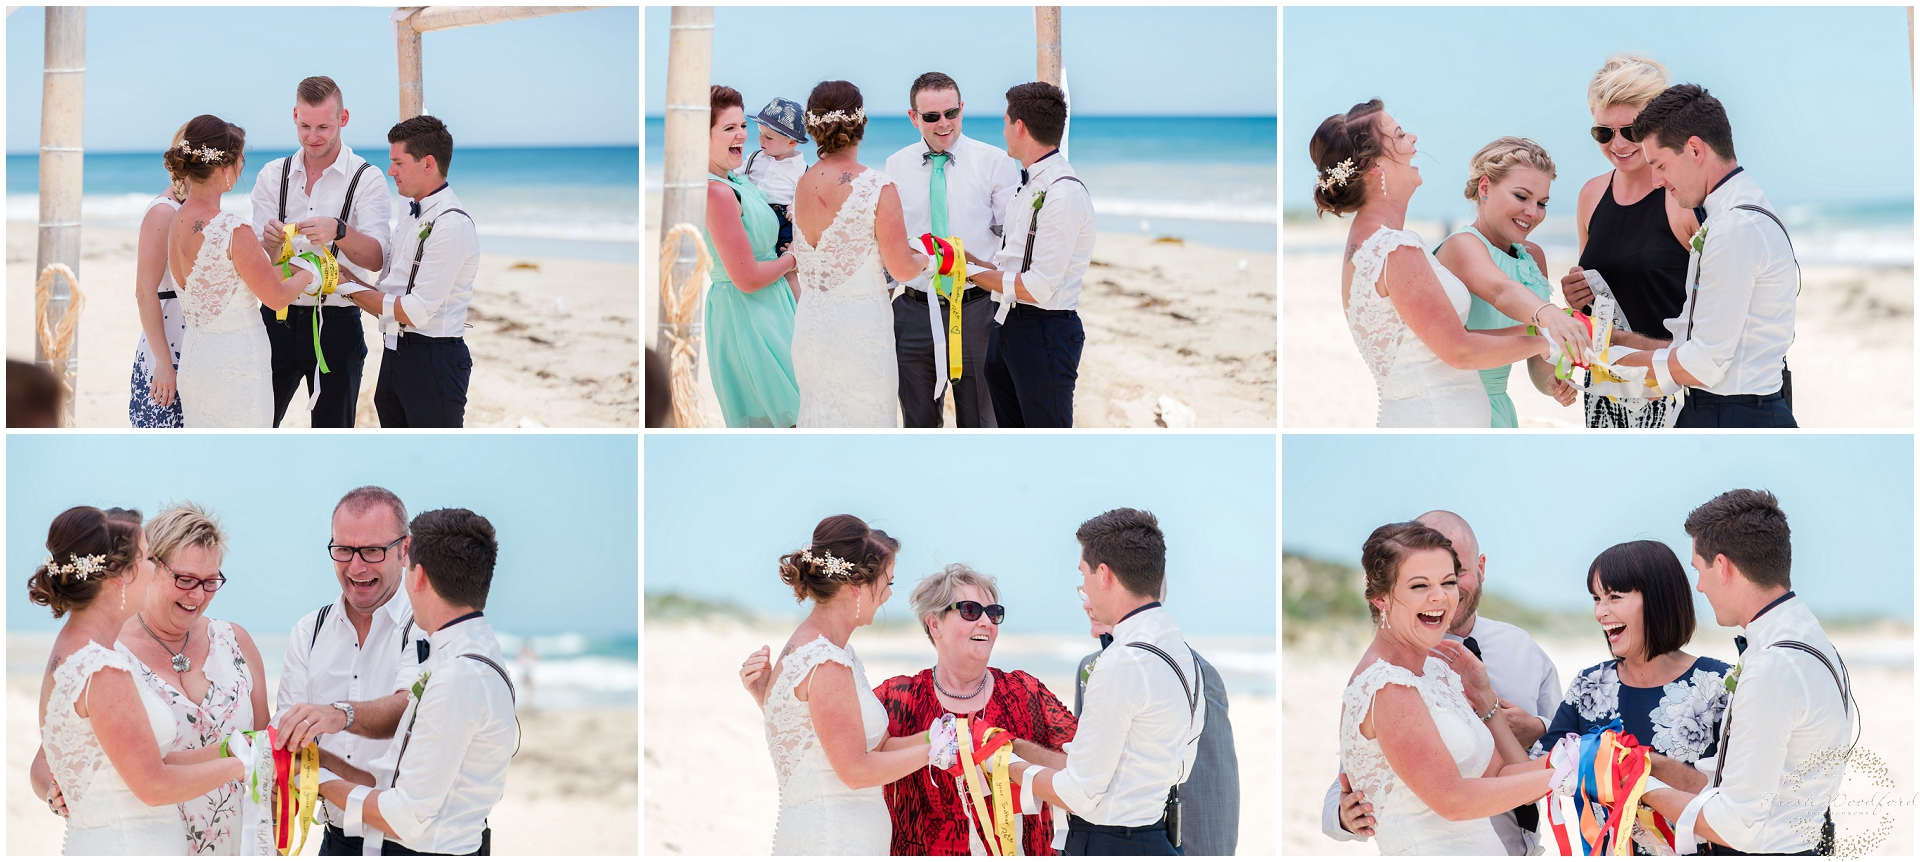 RibbonTyingCeremonyMandurahBeachWedding